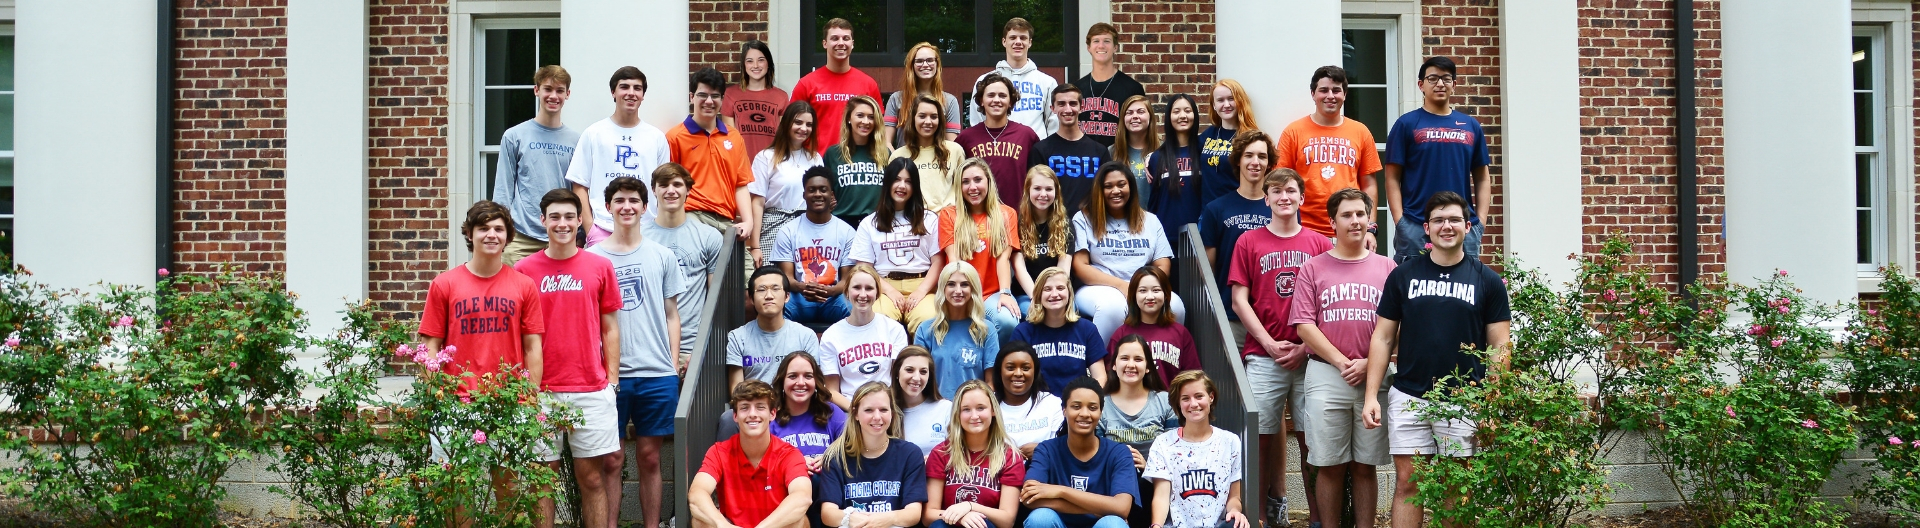 College seniors | Westminster